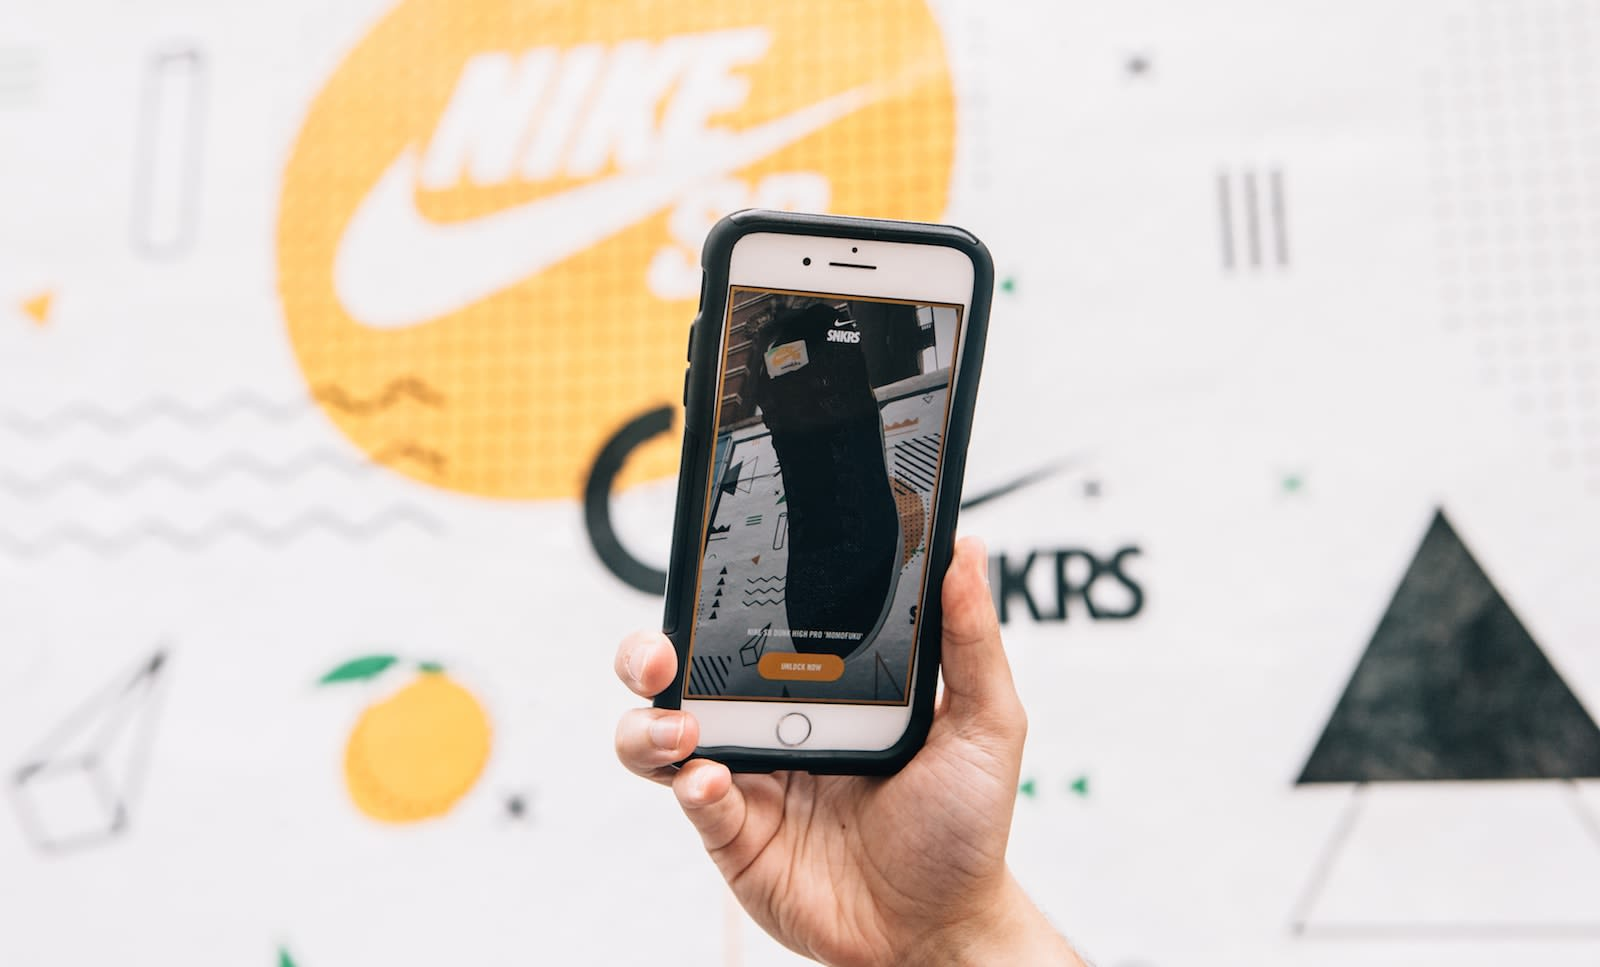 outlet store 04cdf d7237 For Nike, augmented reality is the perfect way to sell hyped sneakers